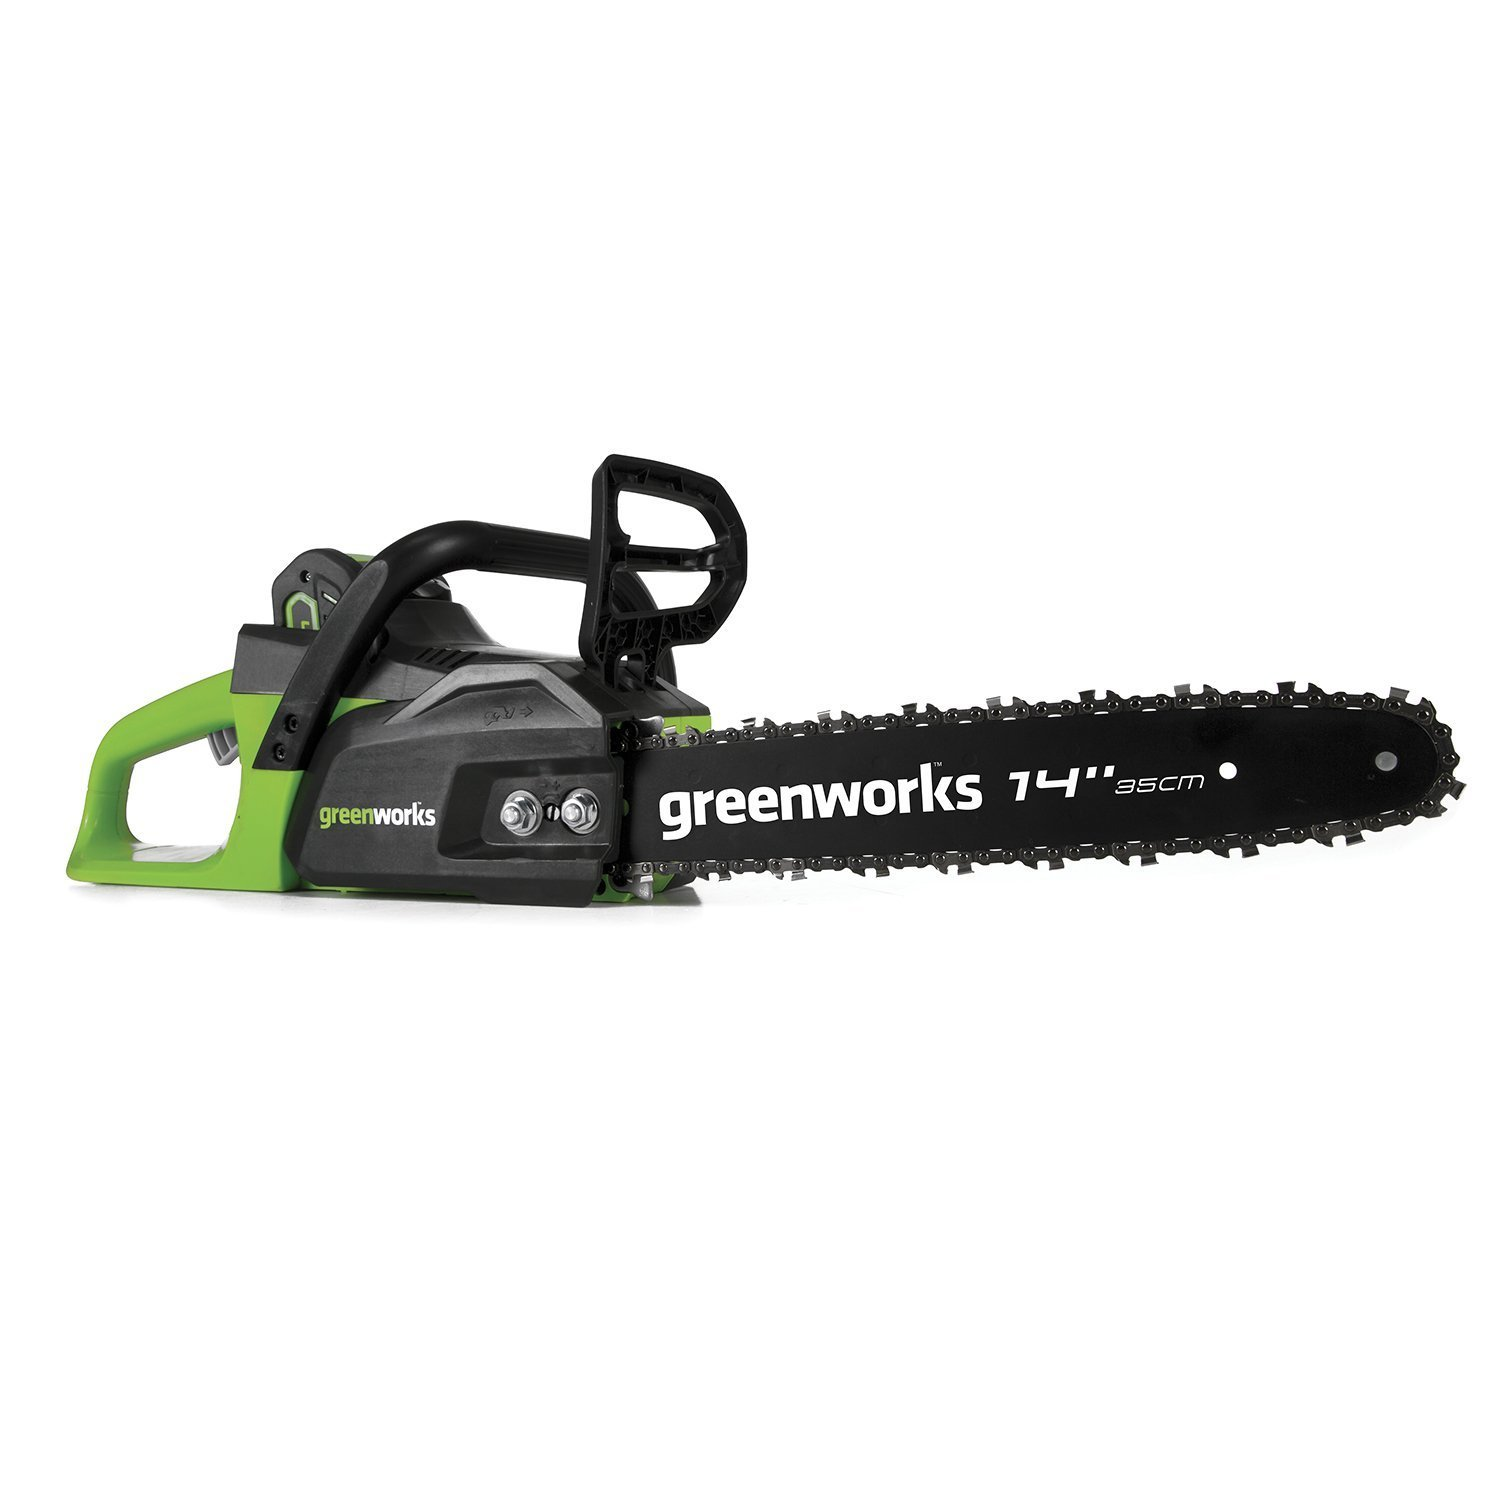 Battery Chainsaw Home Furniture Design